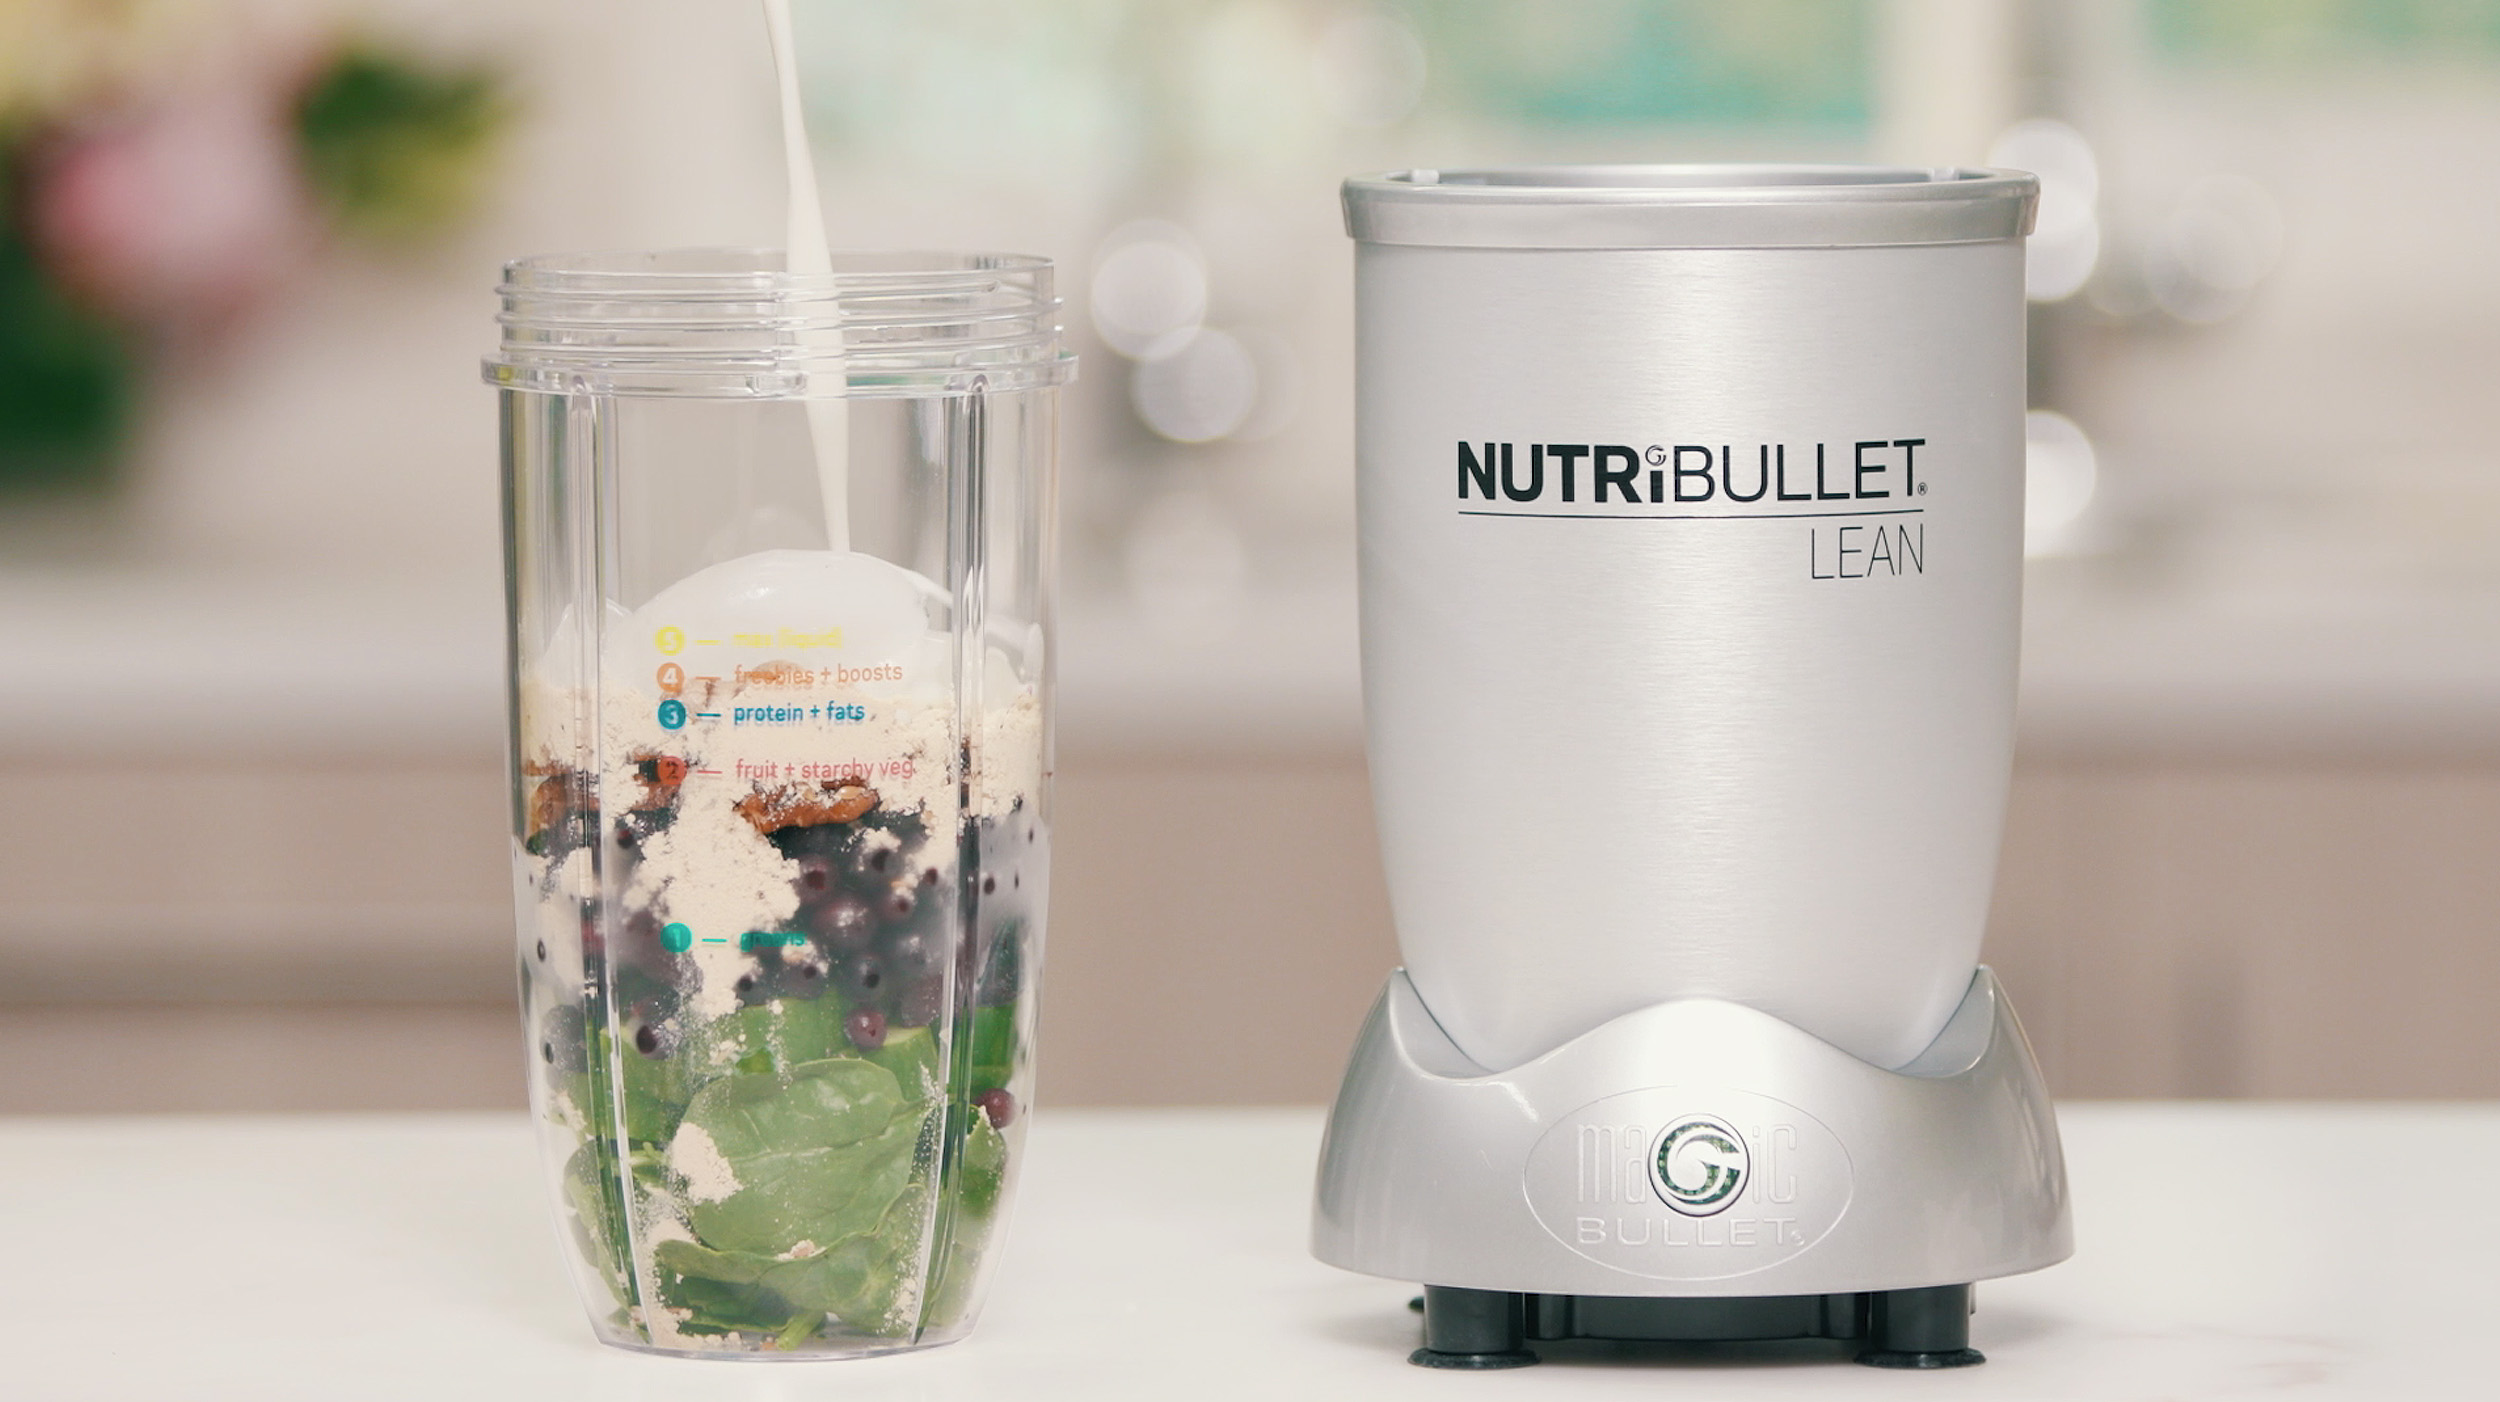 NutriBullet - INSTAGRAM COMMERCIAL FOR NUTRIBULLET